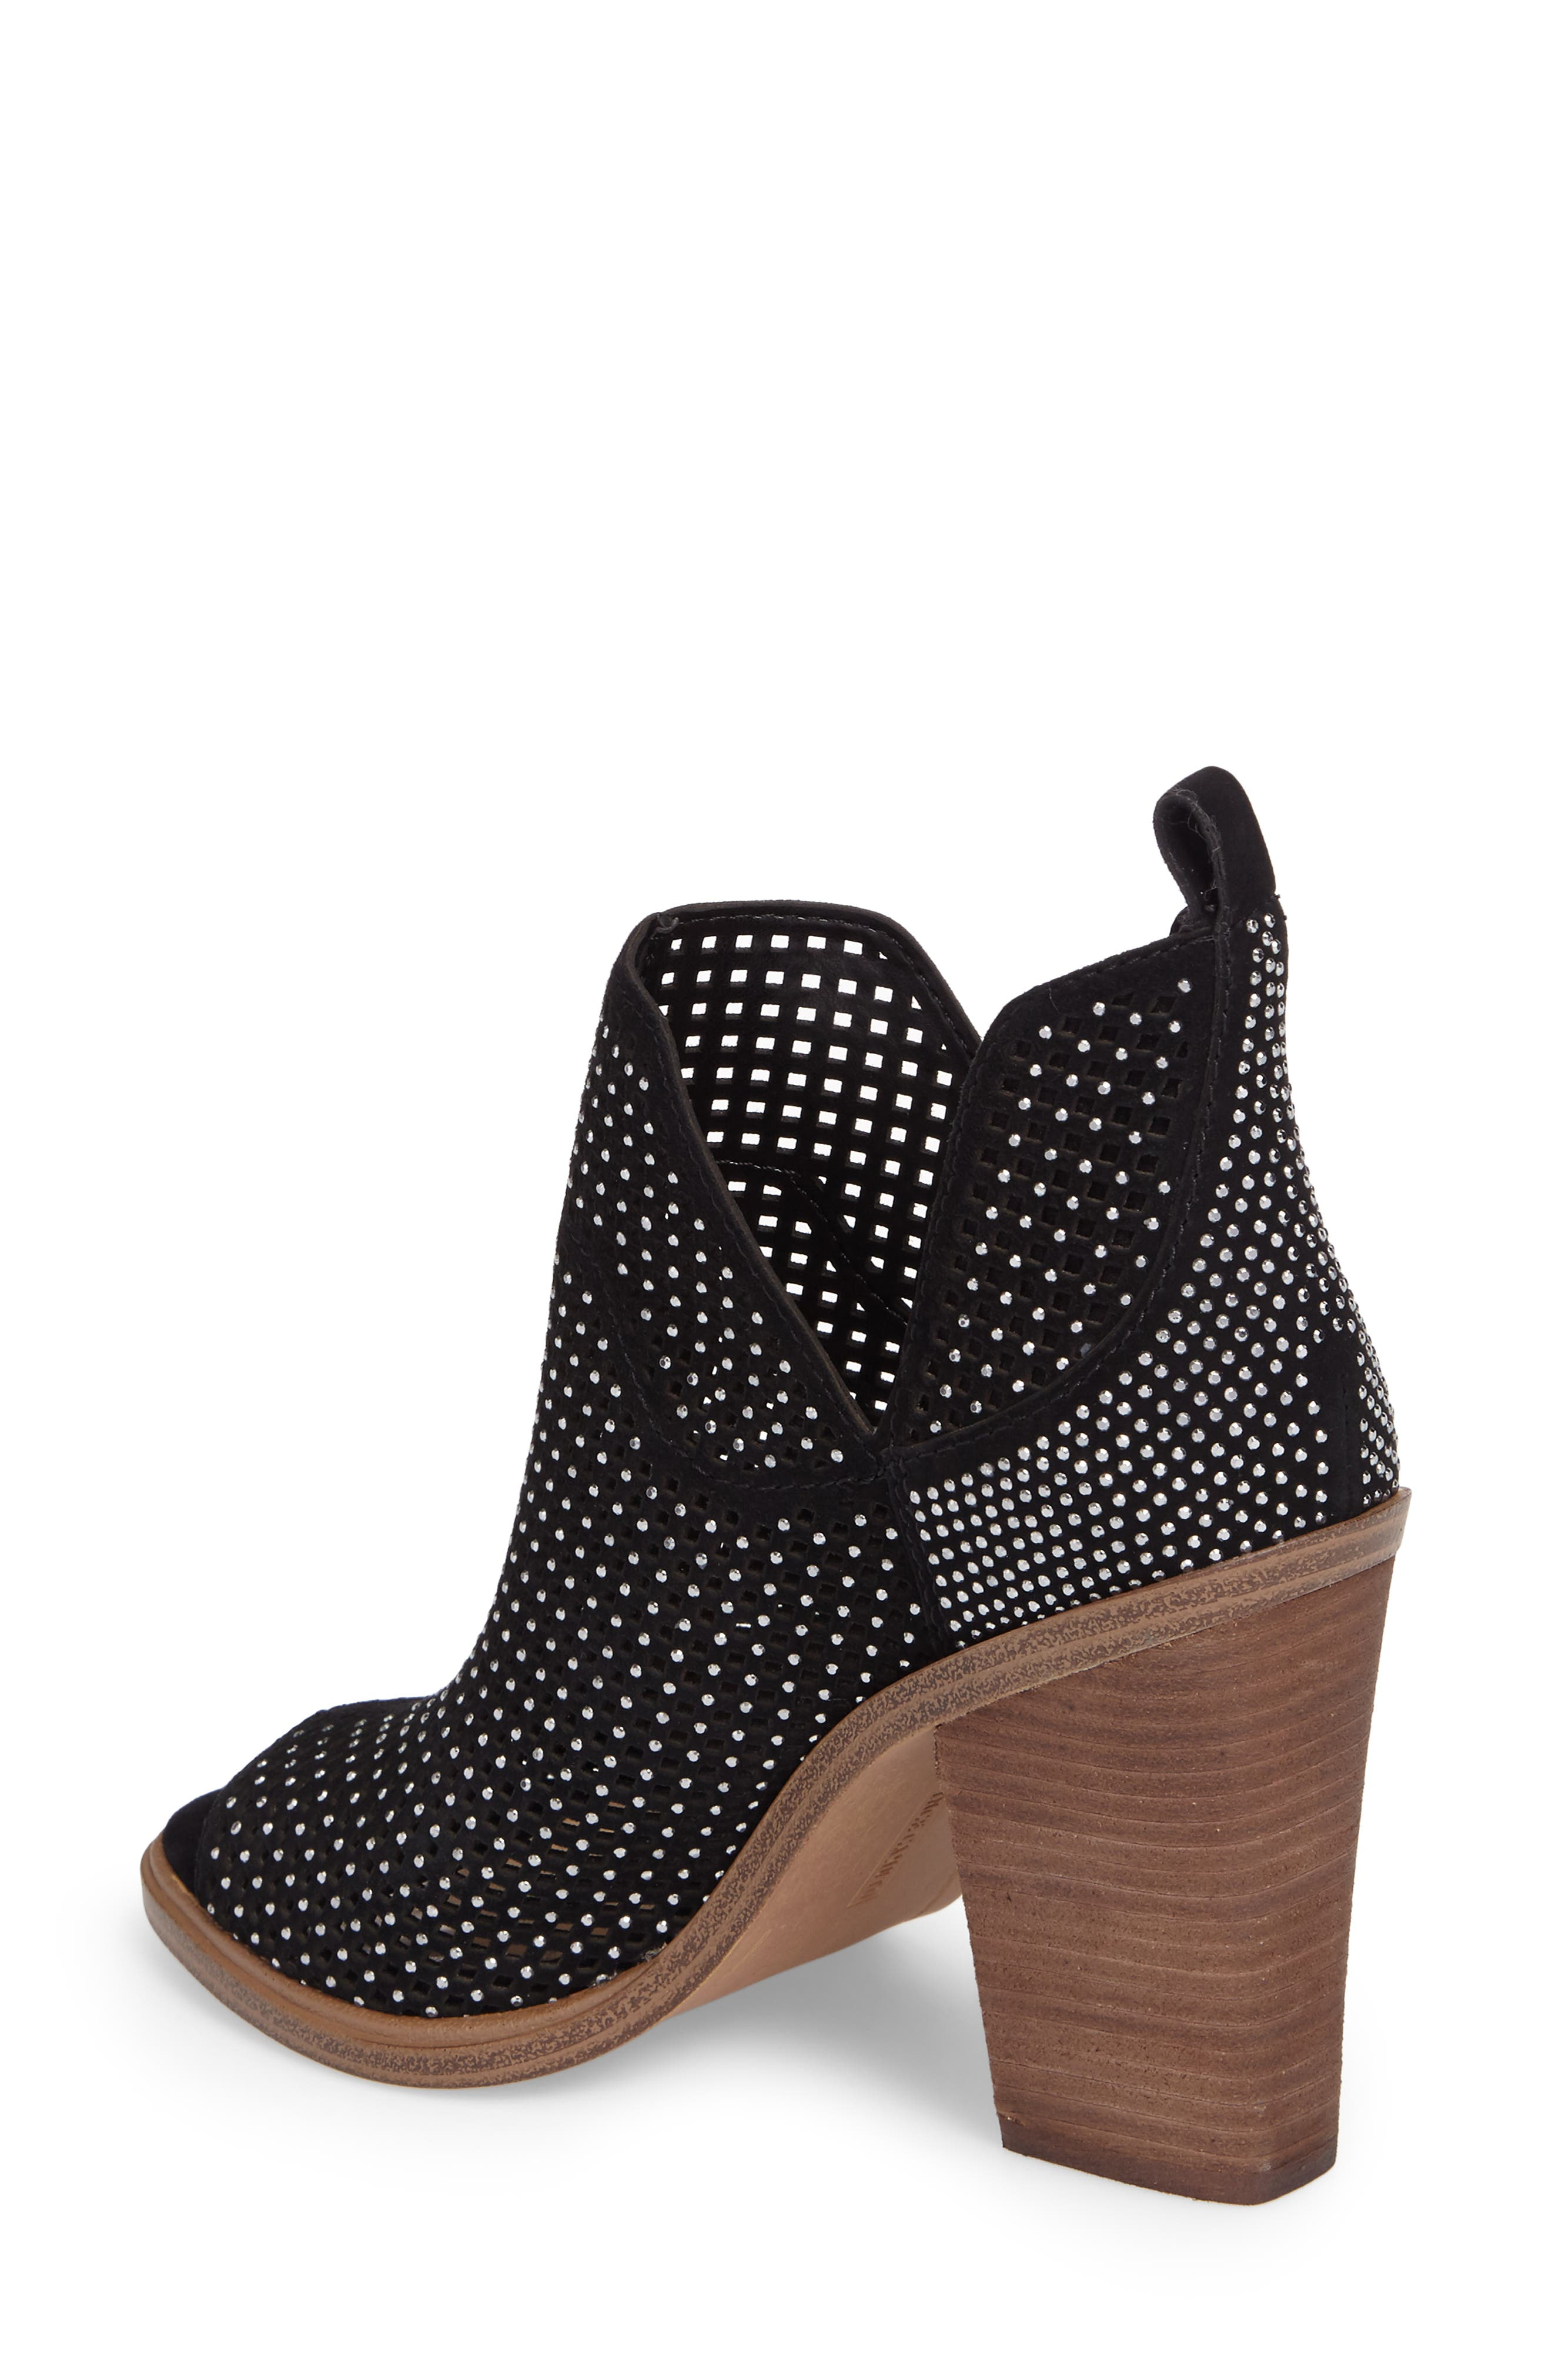 VINCE CAMUTO,                             Kiminni Open Toe Bootie,                             Alternate thumbnail 2, color,                             001